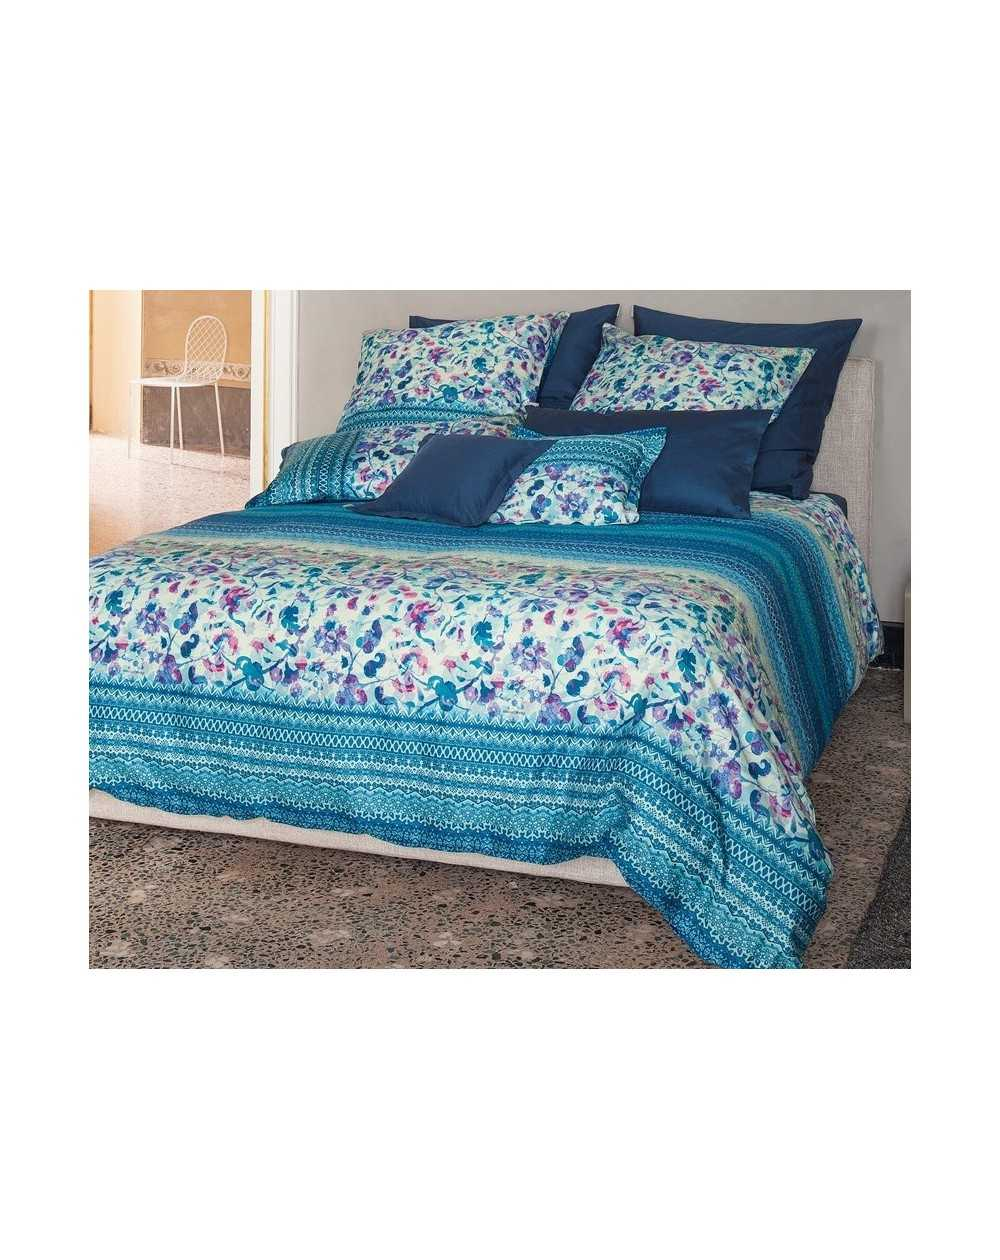 housse de couette granfoulard sangallo bleu. Black Bedroom Furniture Sets. Home Design Ideas